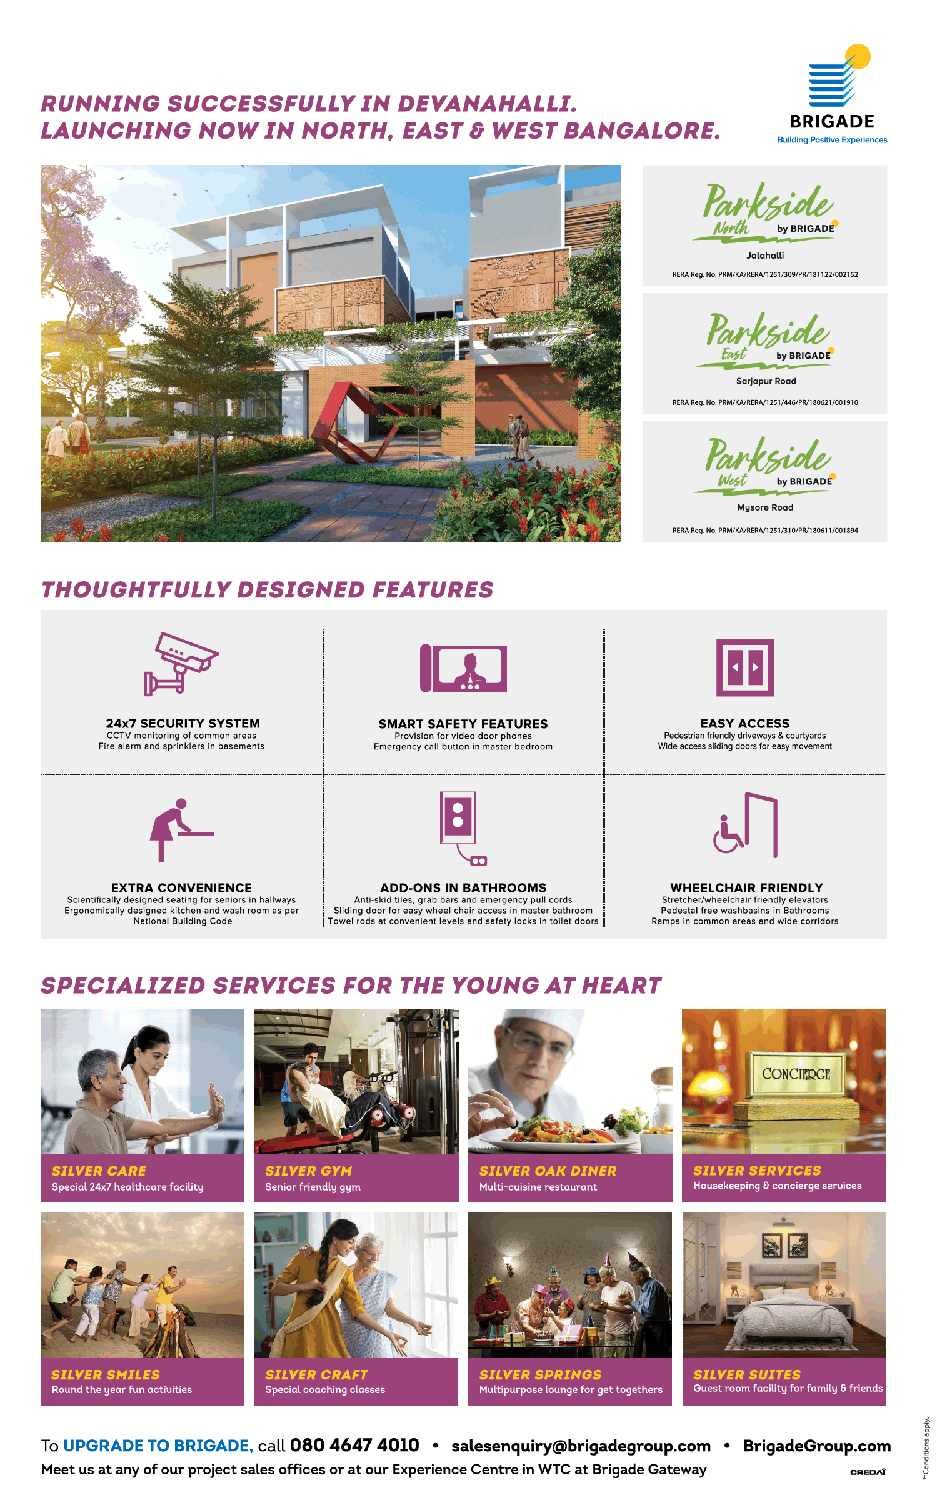 brigade-parkside-2-3-and-3-bhk-homes-ad-times-of-india-bangalore-07-12-2018.png